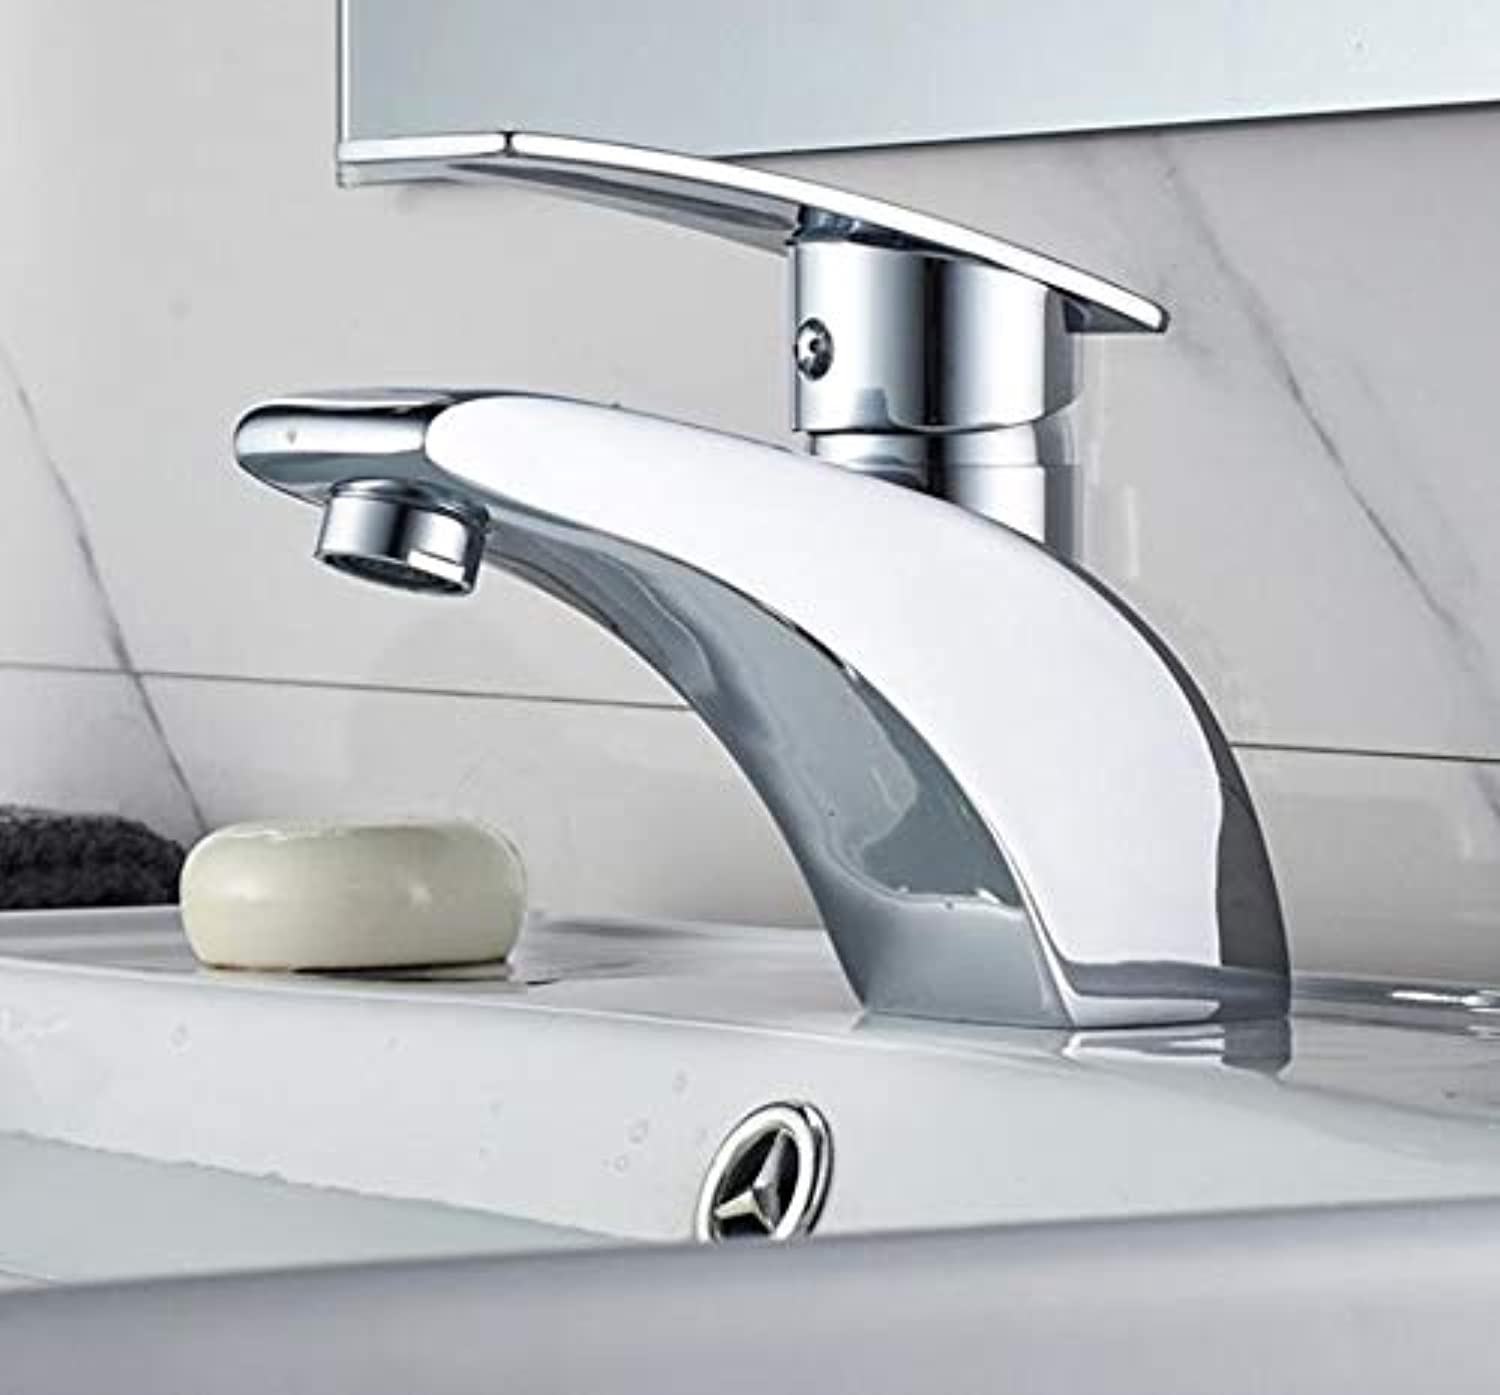 Bathroom Faucet Single Lever Bathroom Faucet Chrome Polished Solid Brass Lavatory Hot and Cold Basin Mixer Tap Water Mixer Taps